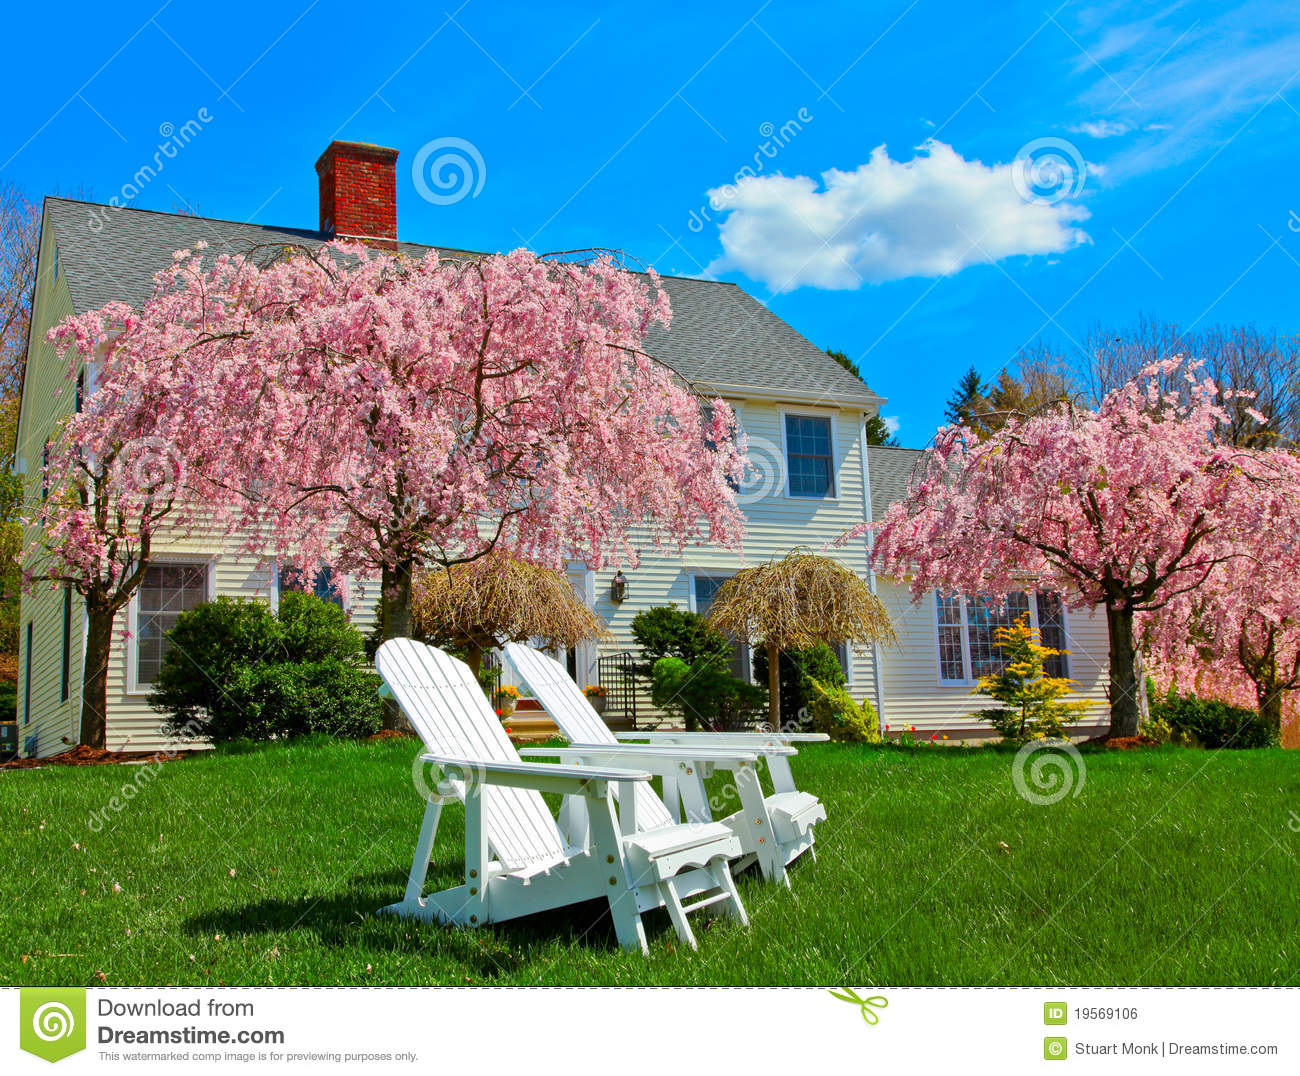 Sitting on grass in front of generic colonial style new england house